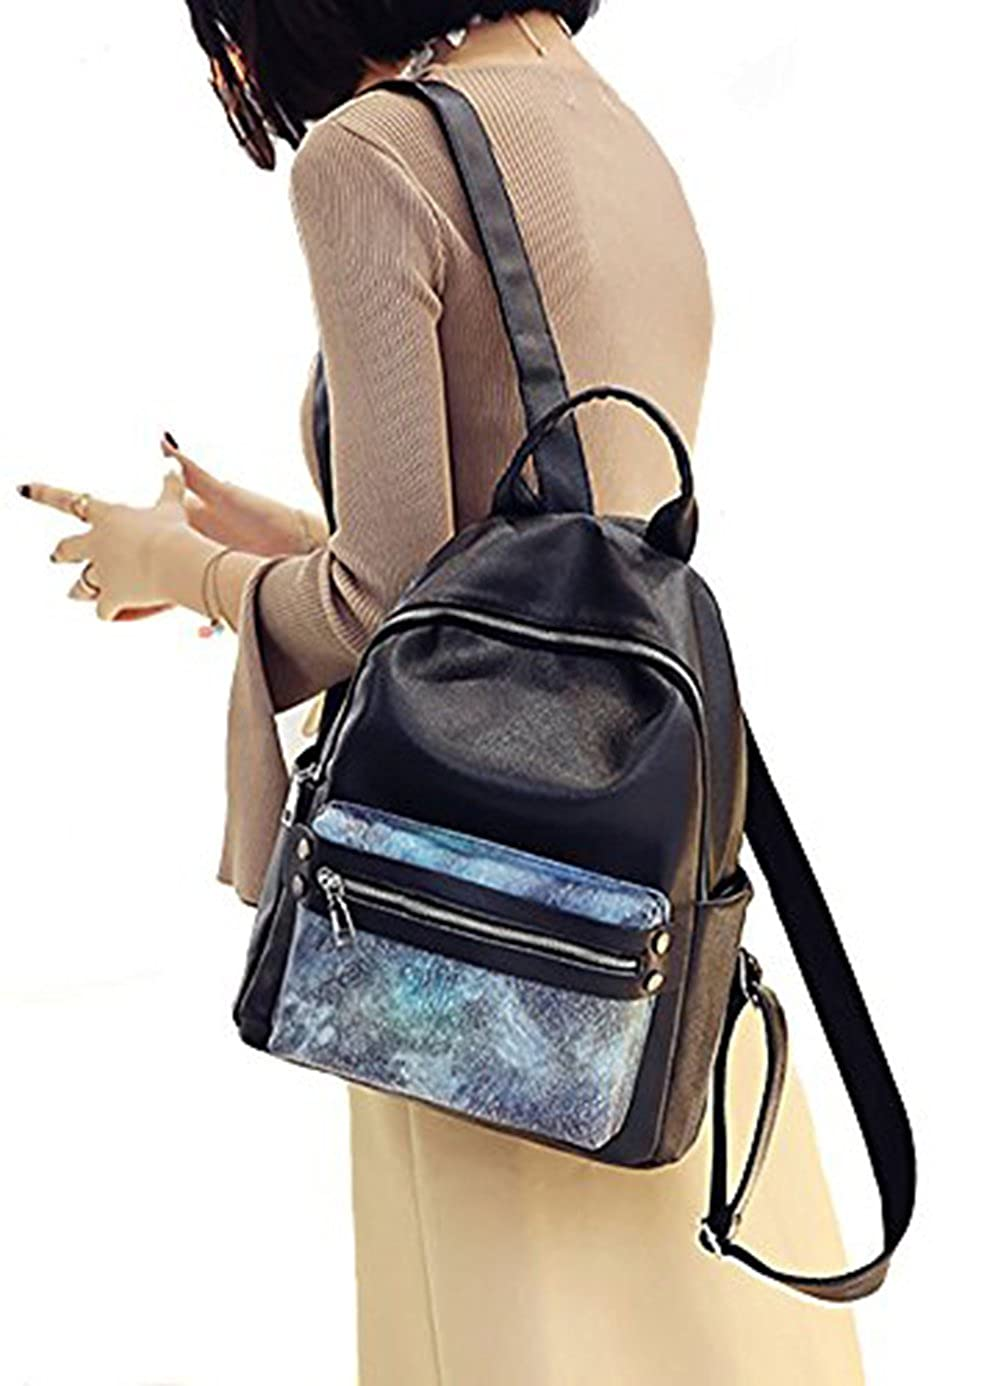 85551e9c9a Womens Fashion Colorful PU Leather Backpack Vintage Daypack School Bookbag